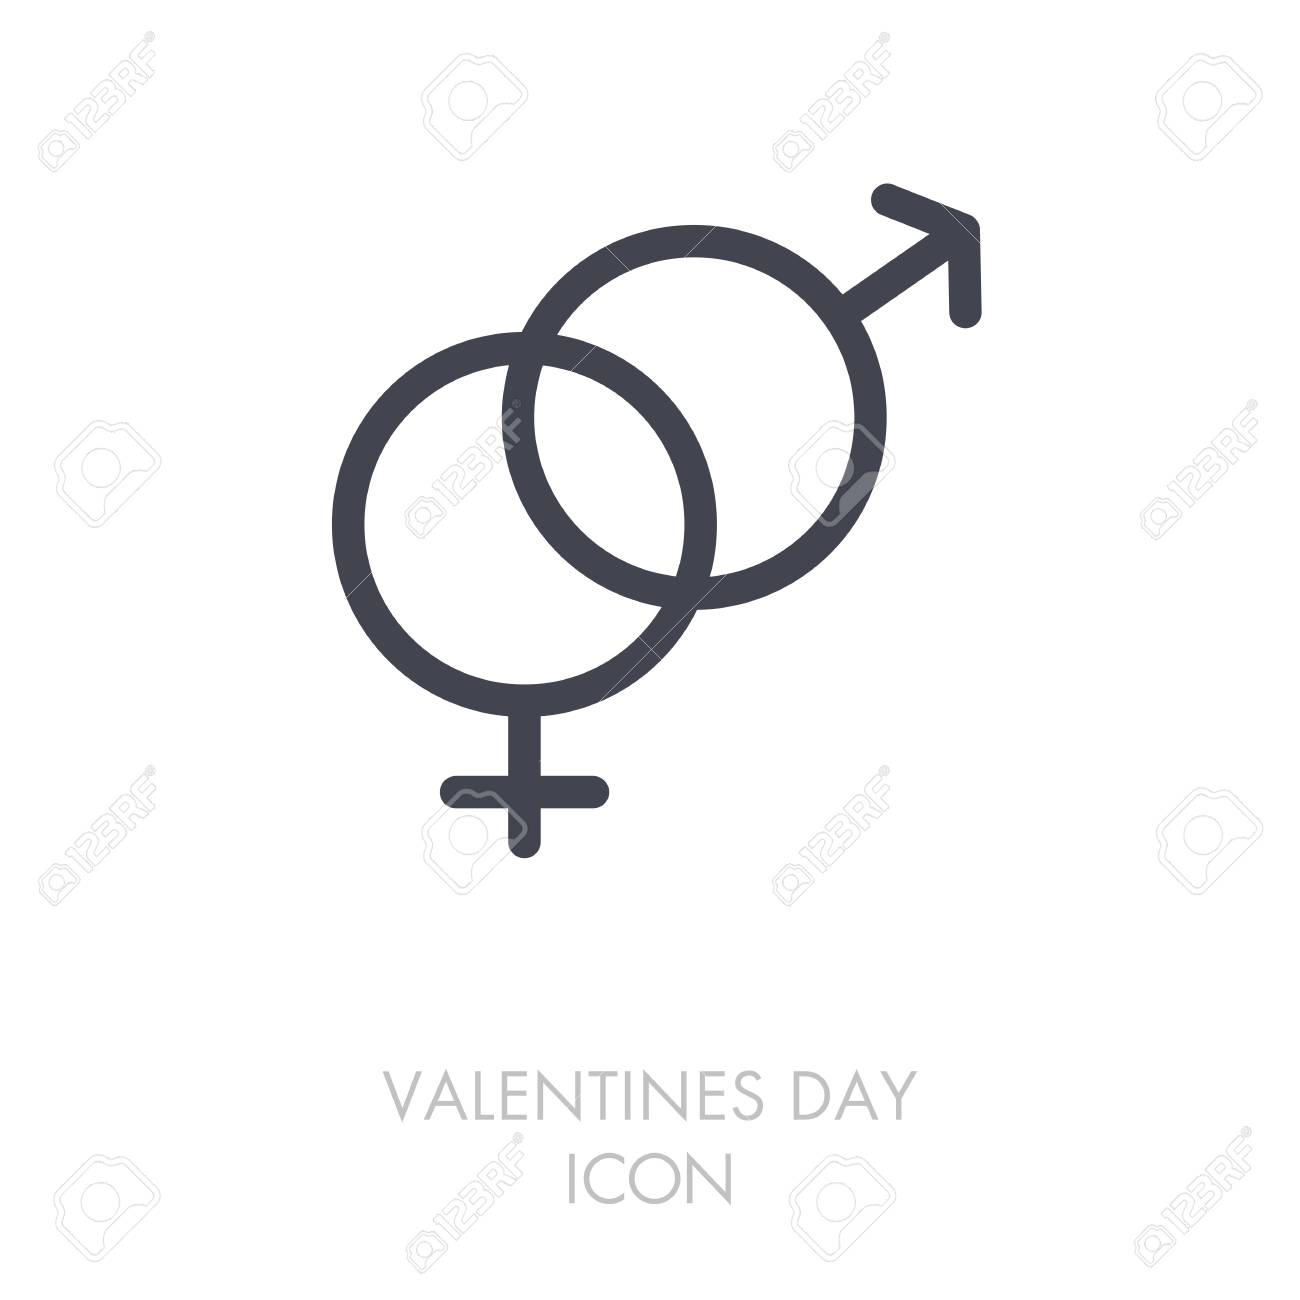 Male And Female Icon Vector Symbols Gender Sign Valentines